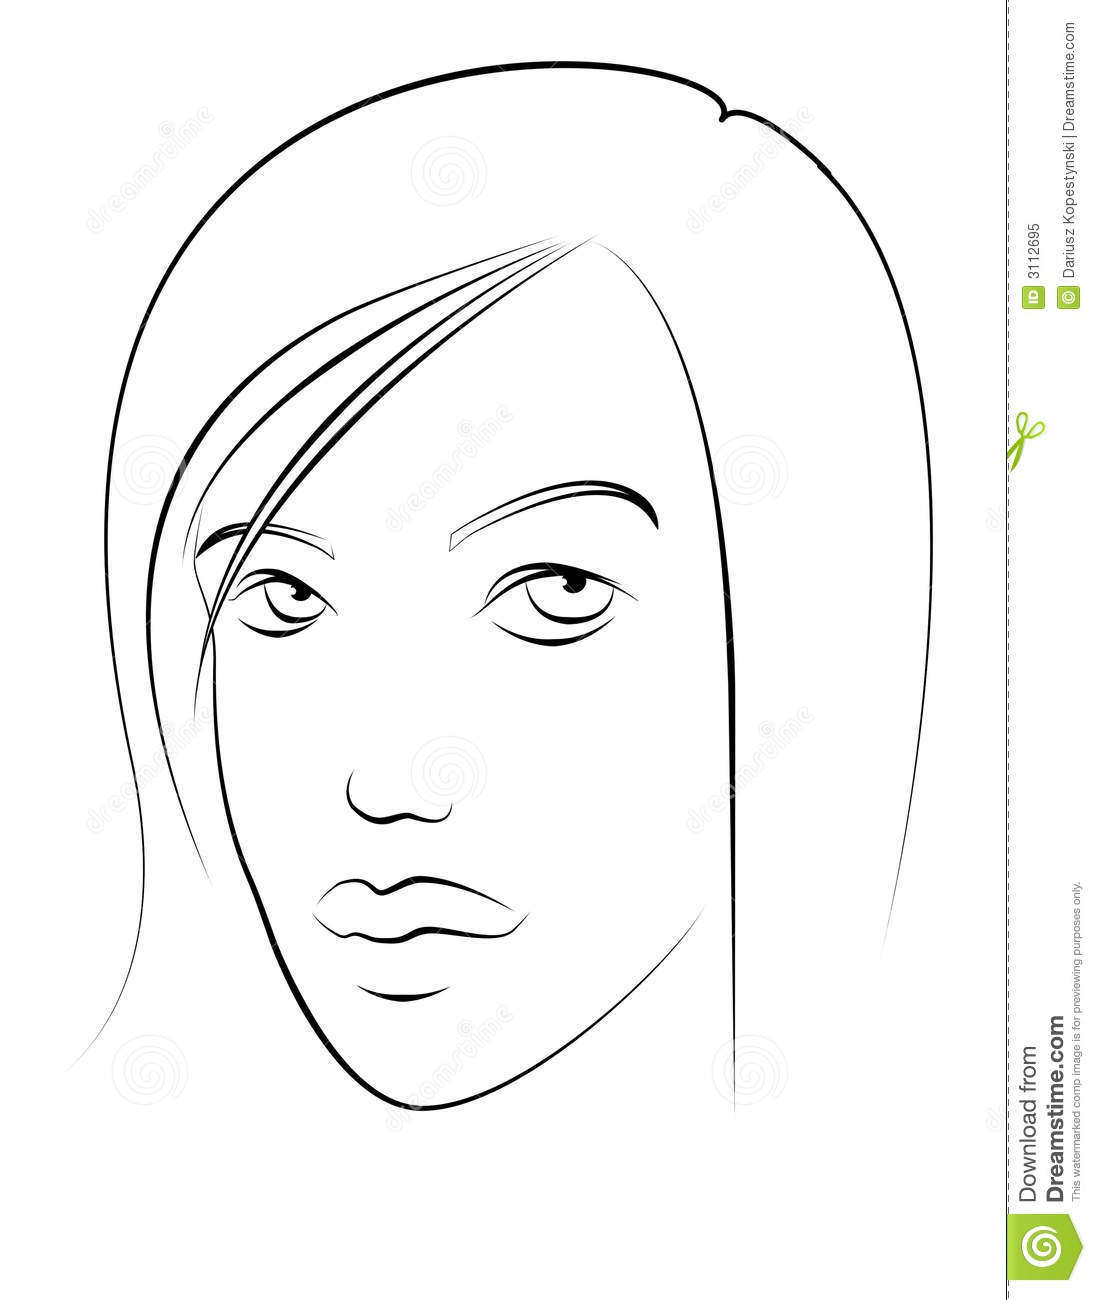 """Search Results for """"Outline Man Image"""""""